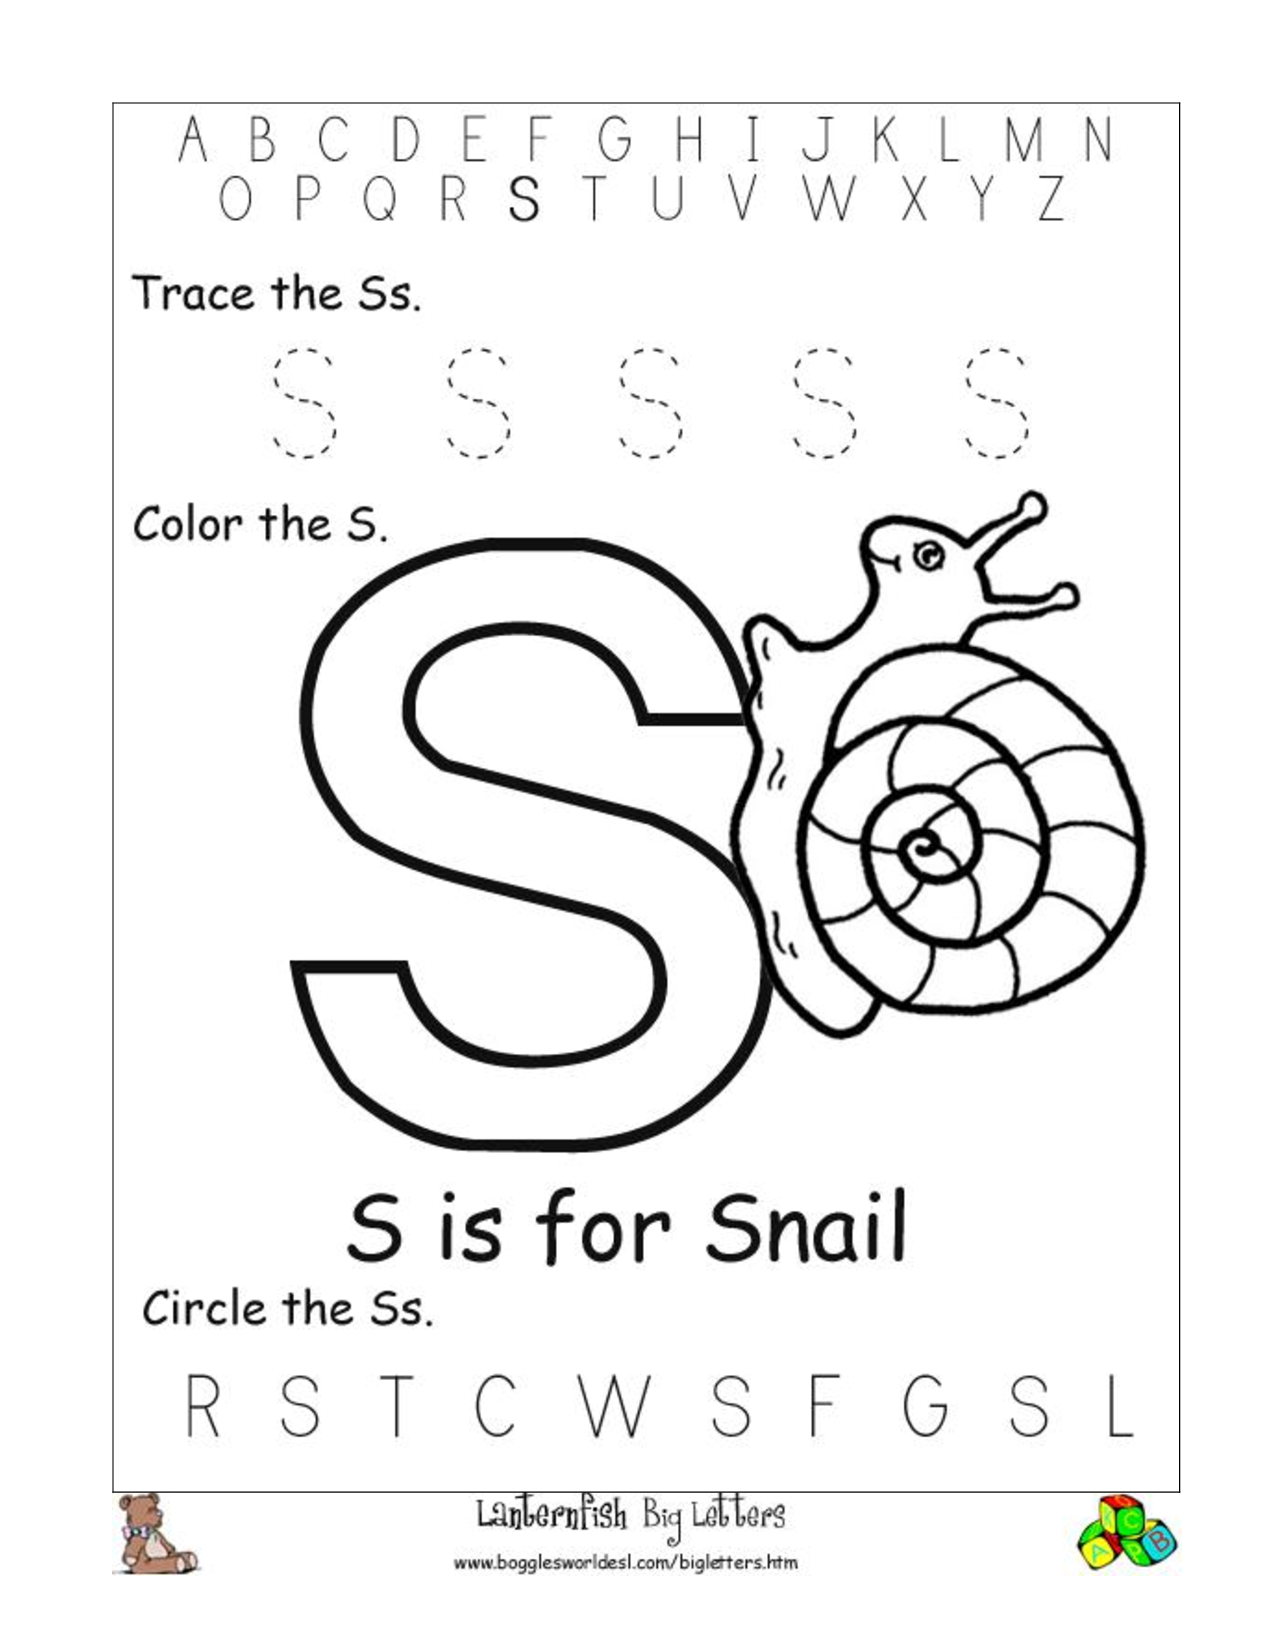 printable letter s worksheets stuff to buy pinterest printable letters worksheets and. Black Bedroom Furniture Sets. Home Design Ideas